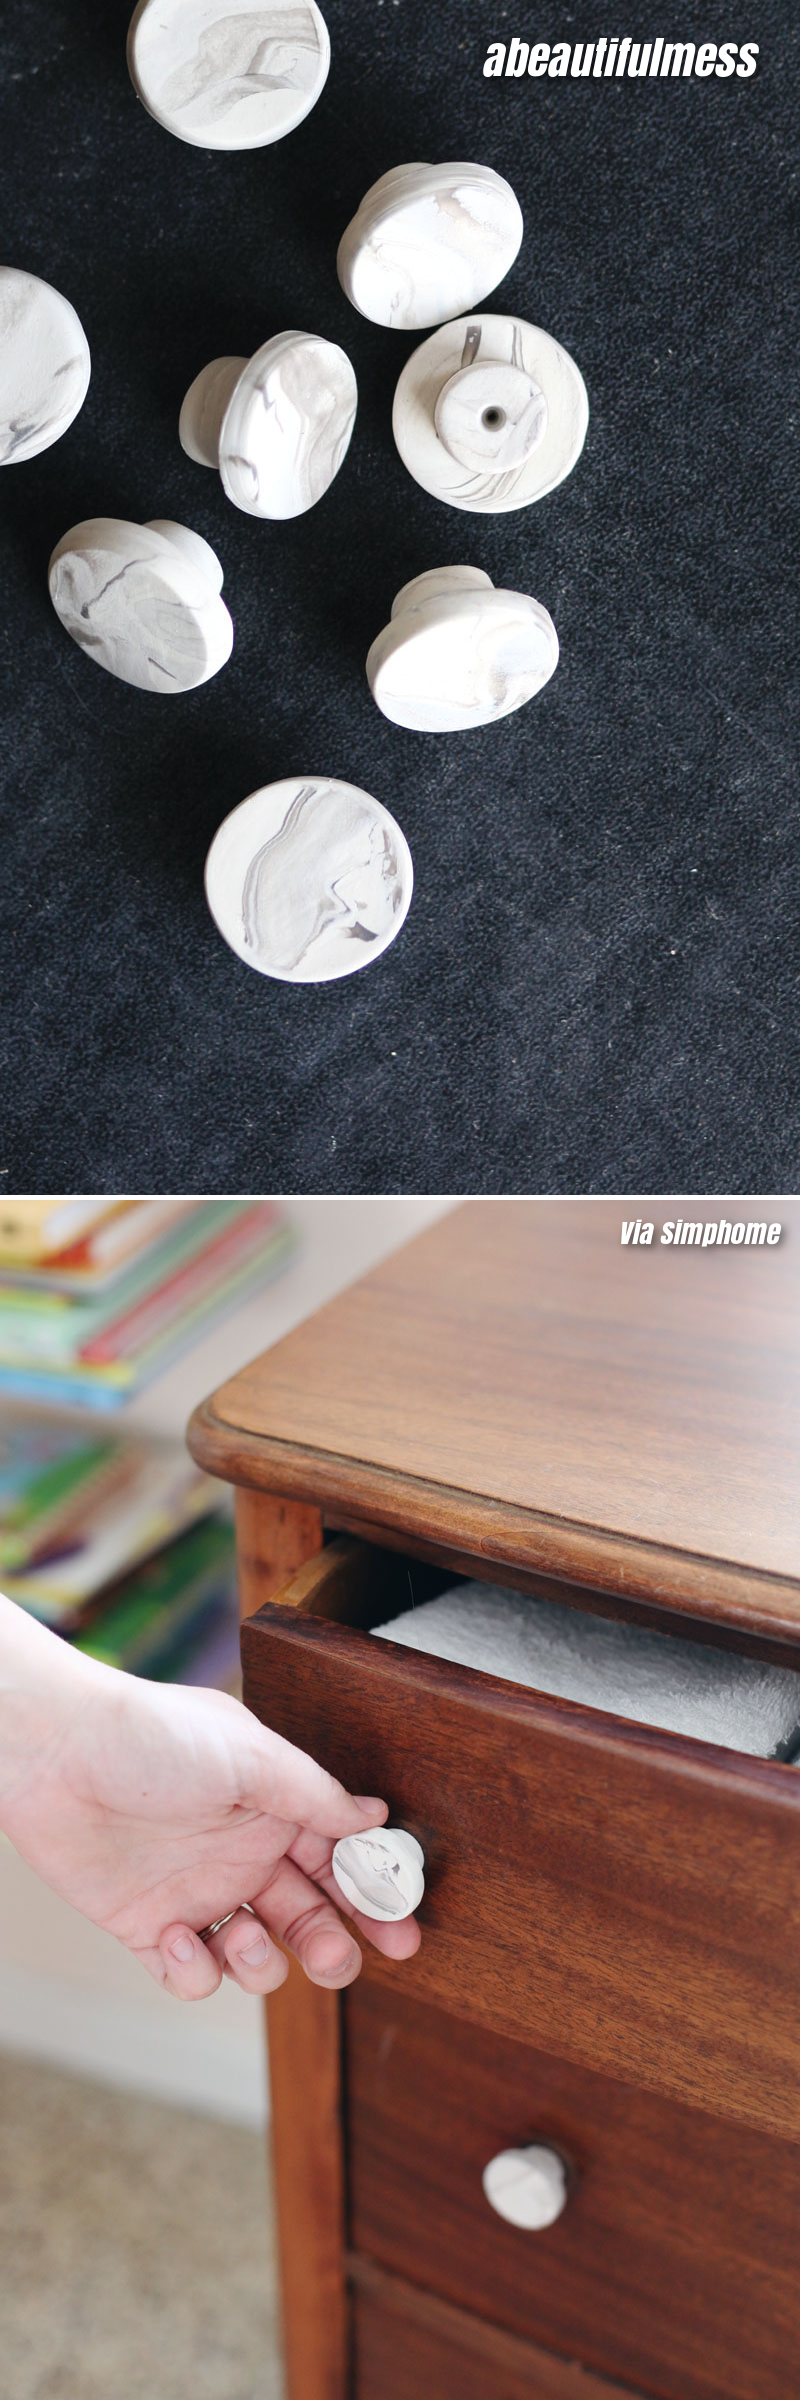 3 Replace the Hardware of Your Drawers of Cabinets via simphome